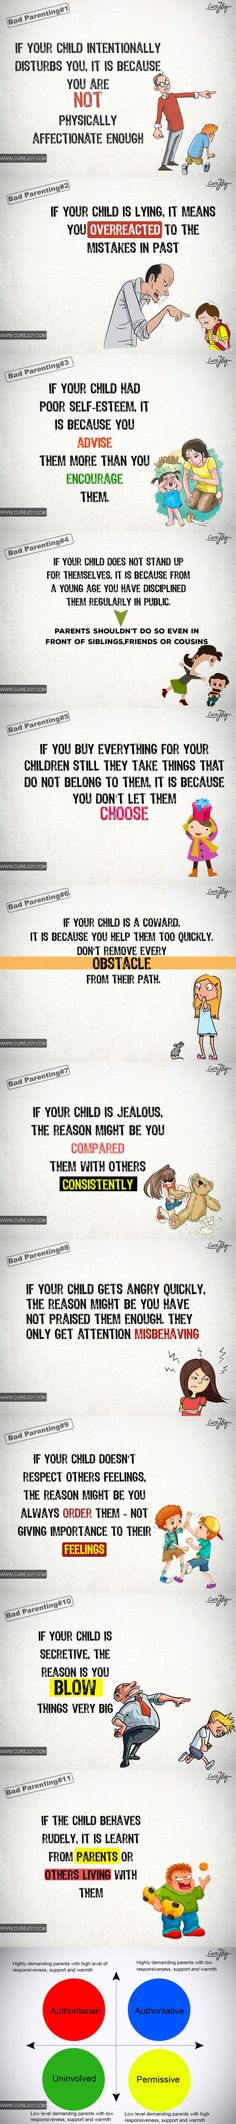 Found parents some advice, trust me I'm a psychologist - 9GAG: